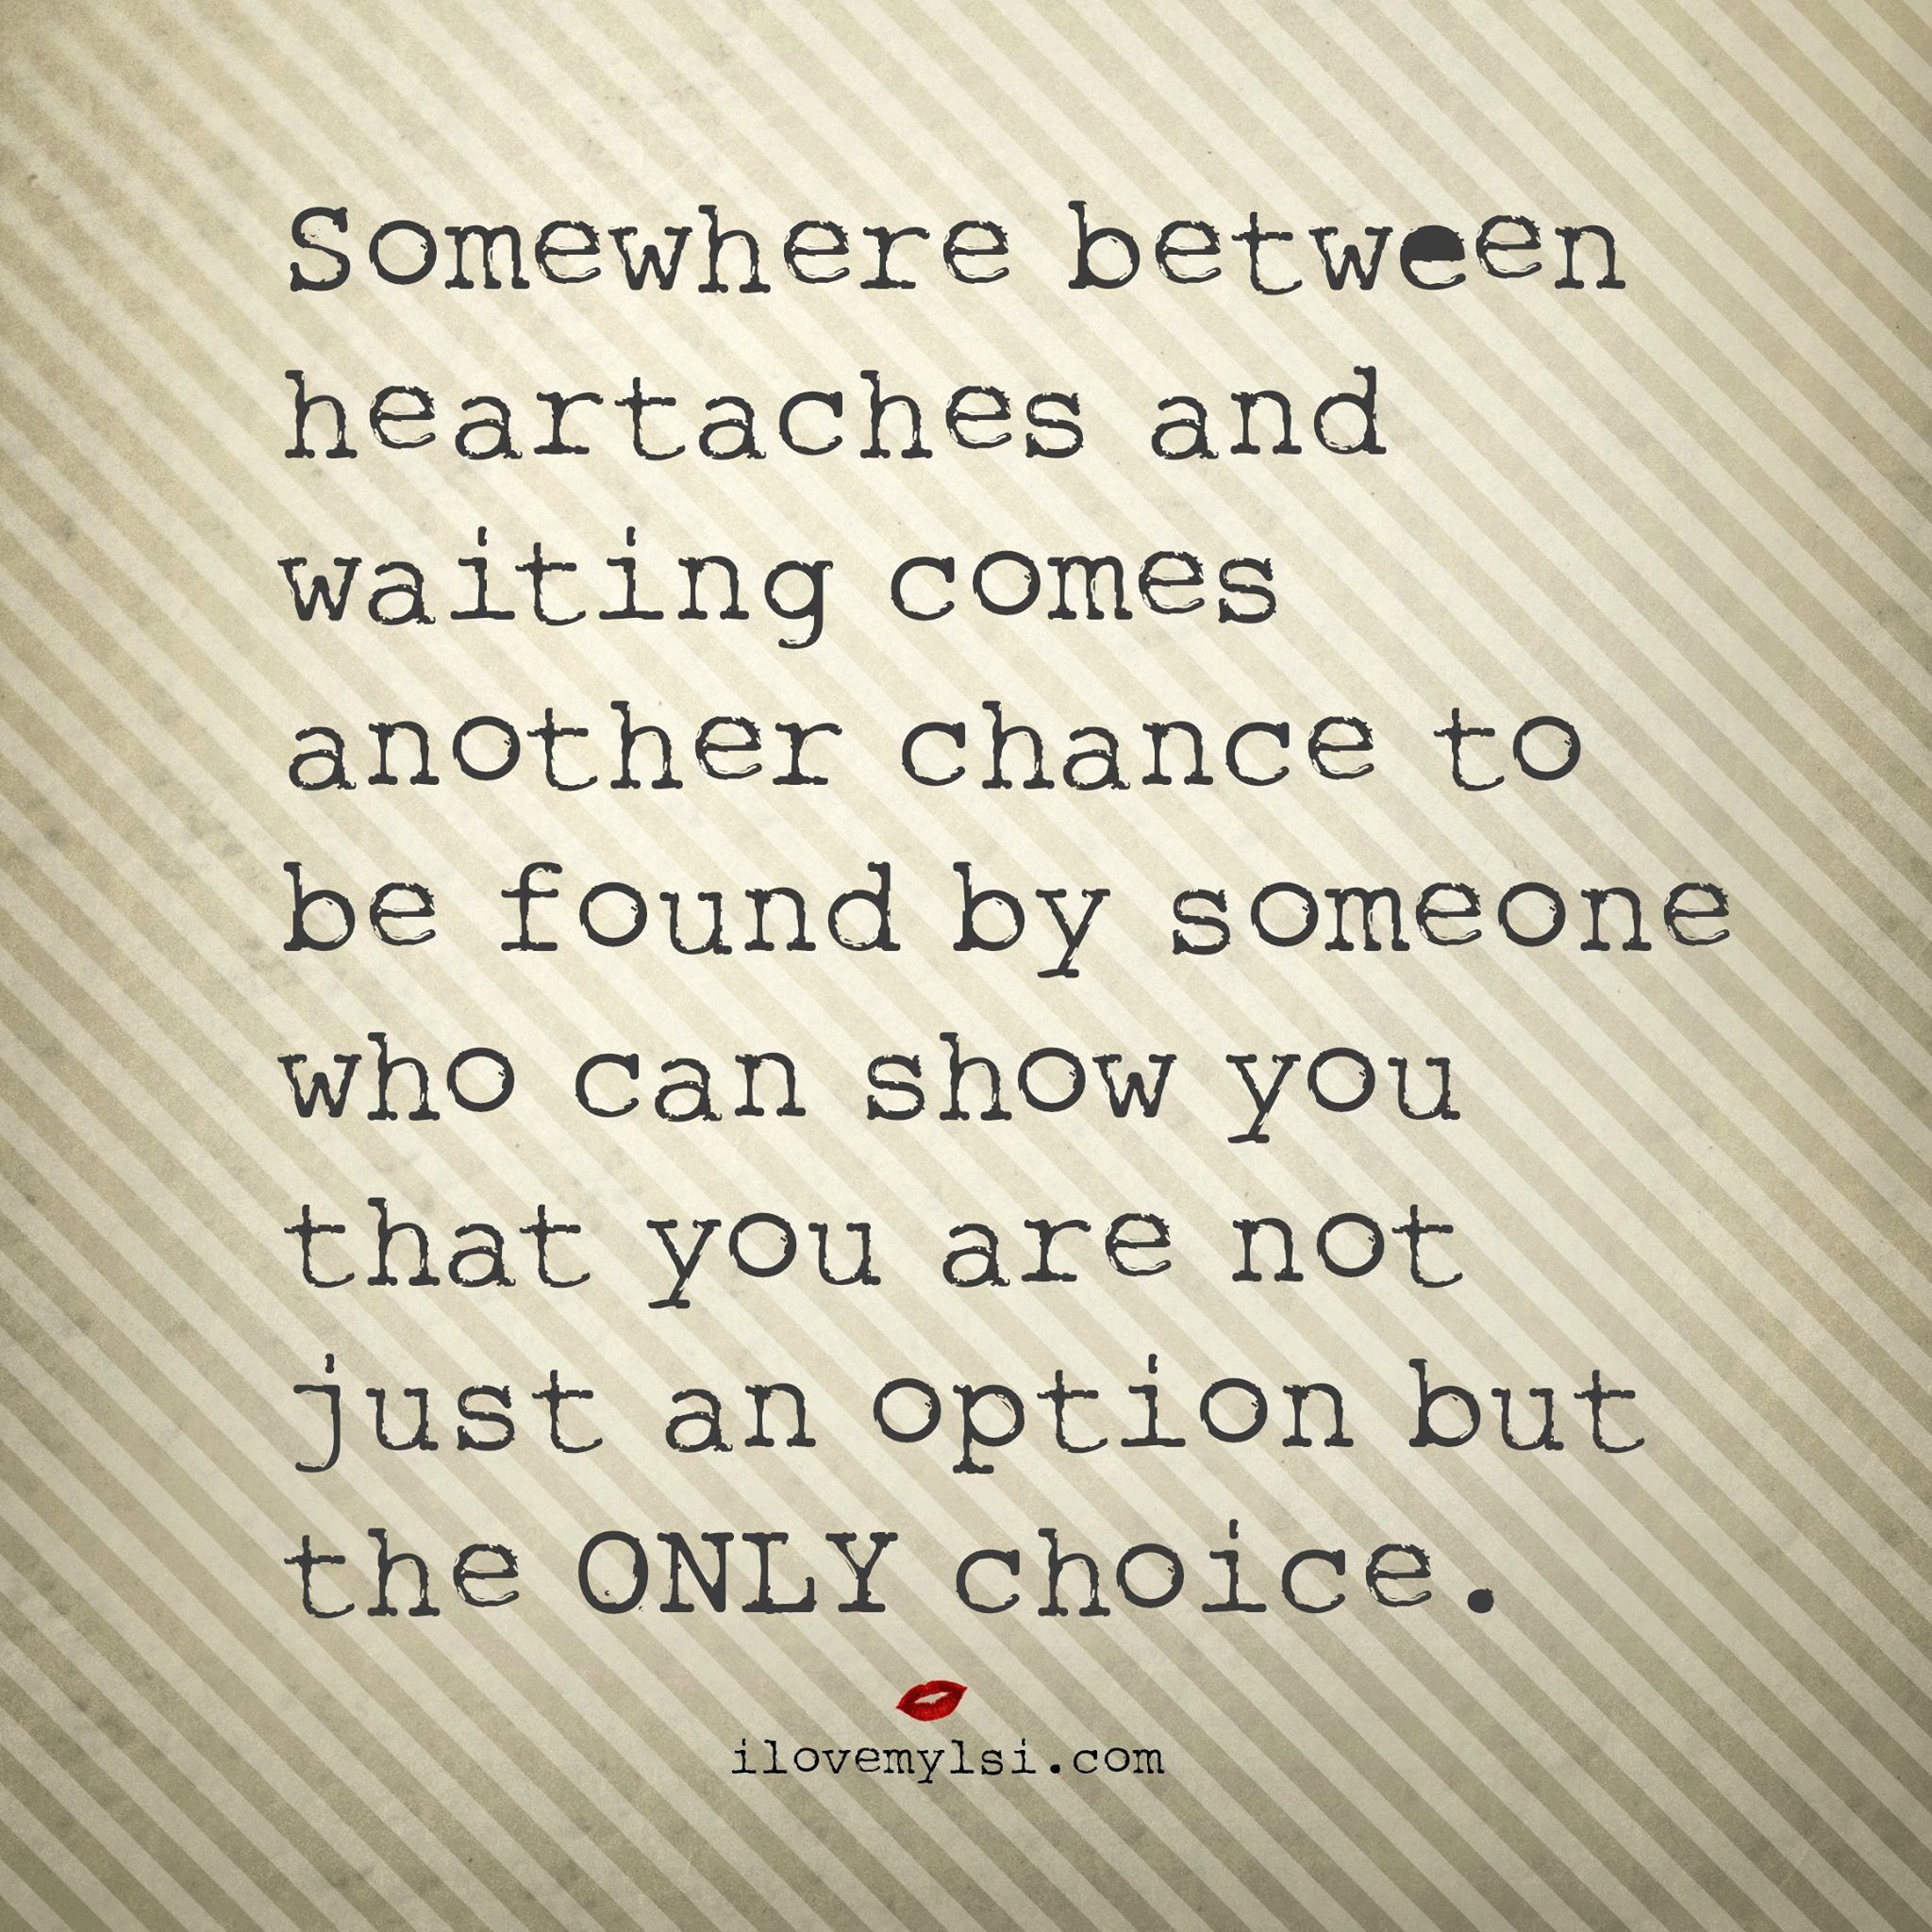 Somewhere between heartaches and waiting es another chance to be found by someone who can show you that you are not just an option but the ONLY choice